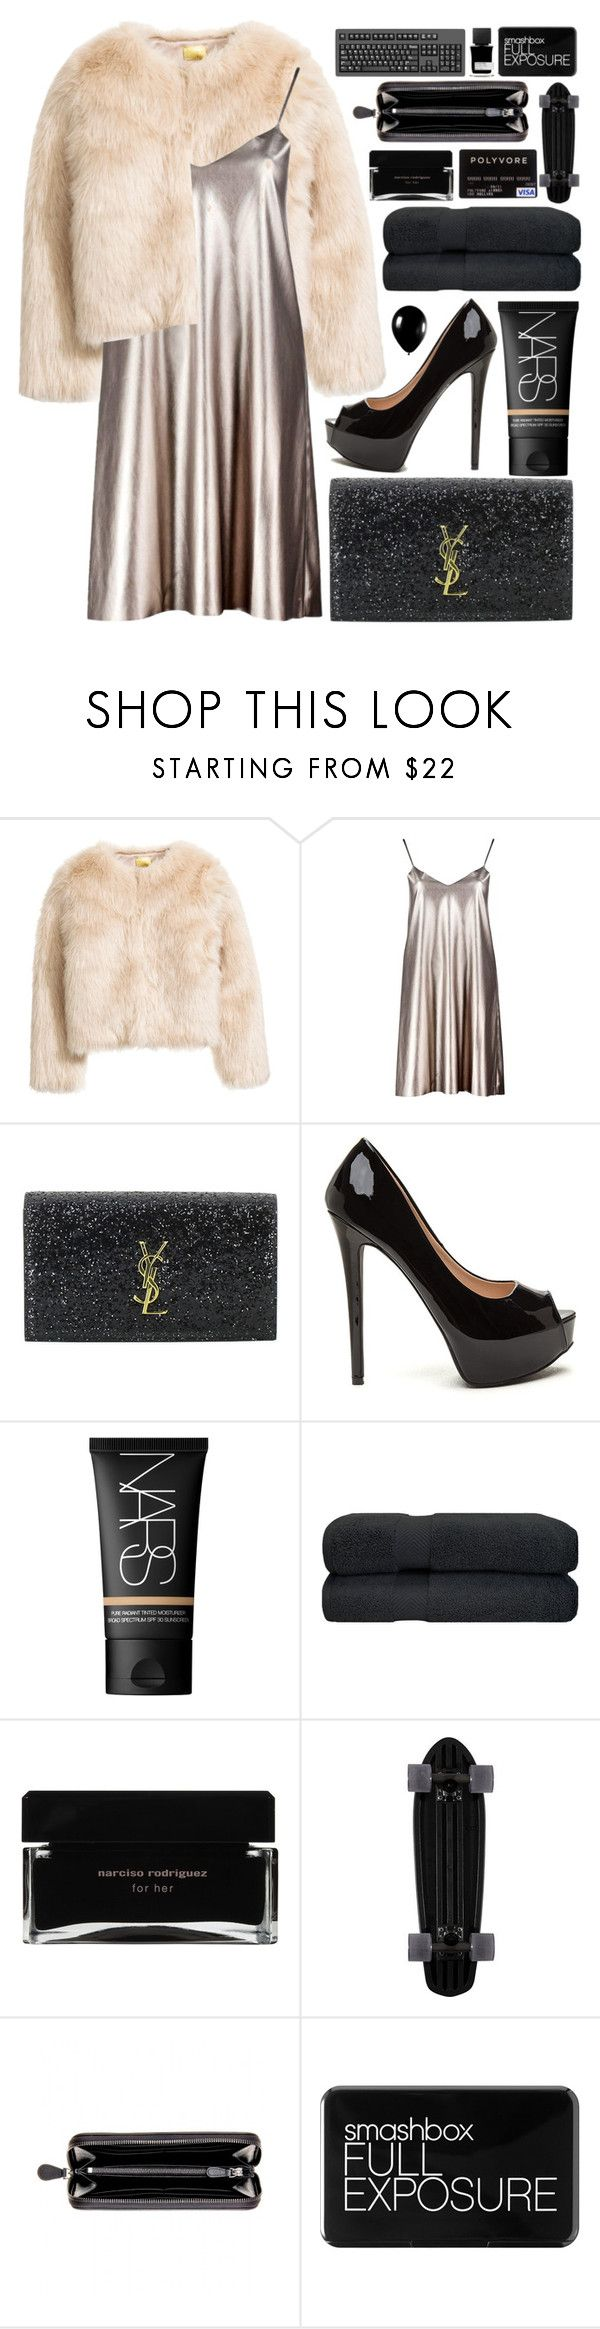 """new years eve party"" by charli-oakeby ❤ liked on Polyvore featuring Boohoo, Yves Saint Laurent, NARS Cosmetics, Alexander McQueen, Narciso Rodriguez, Bottega Veneta, Smashbox and MiN New York"